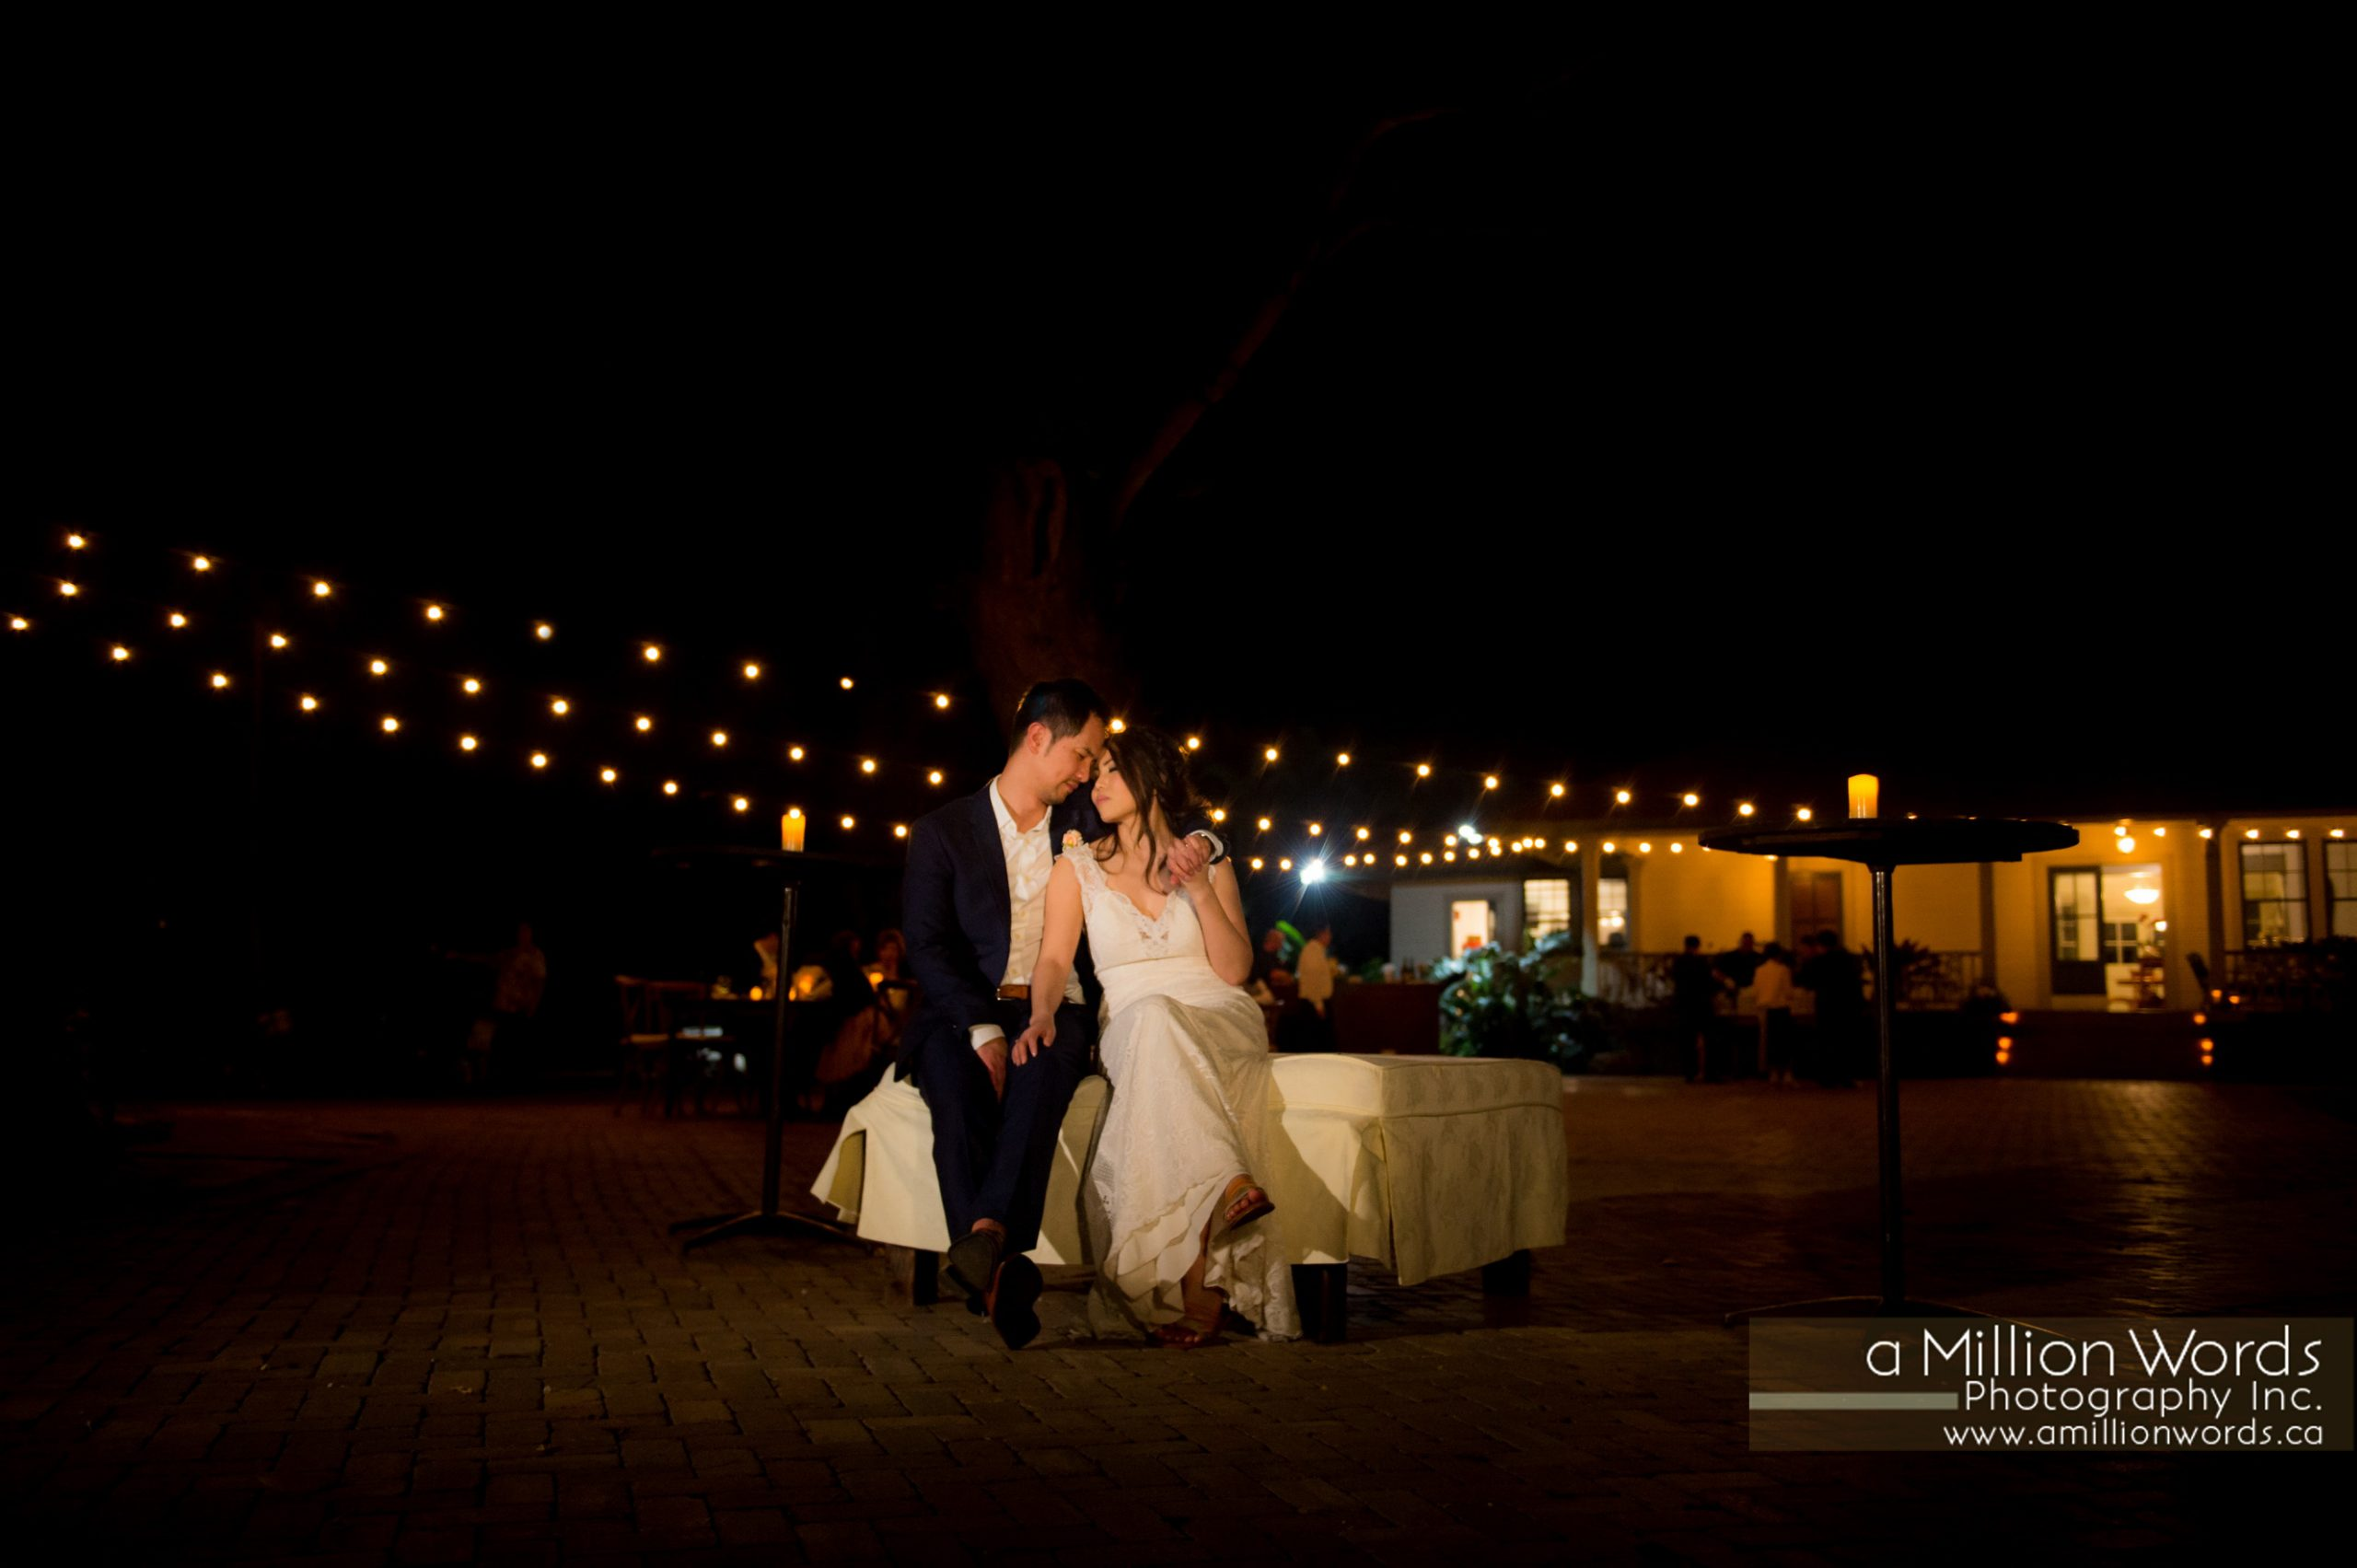 kw_destination_wedding_photography58